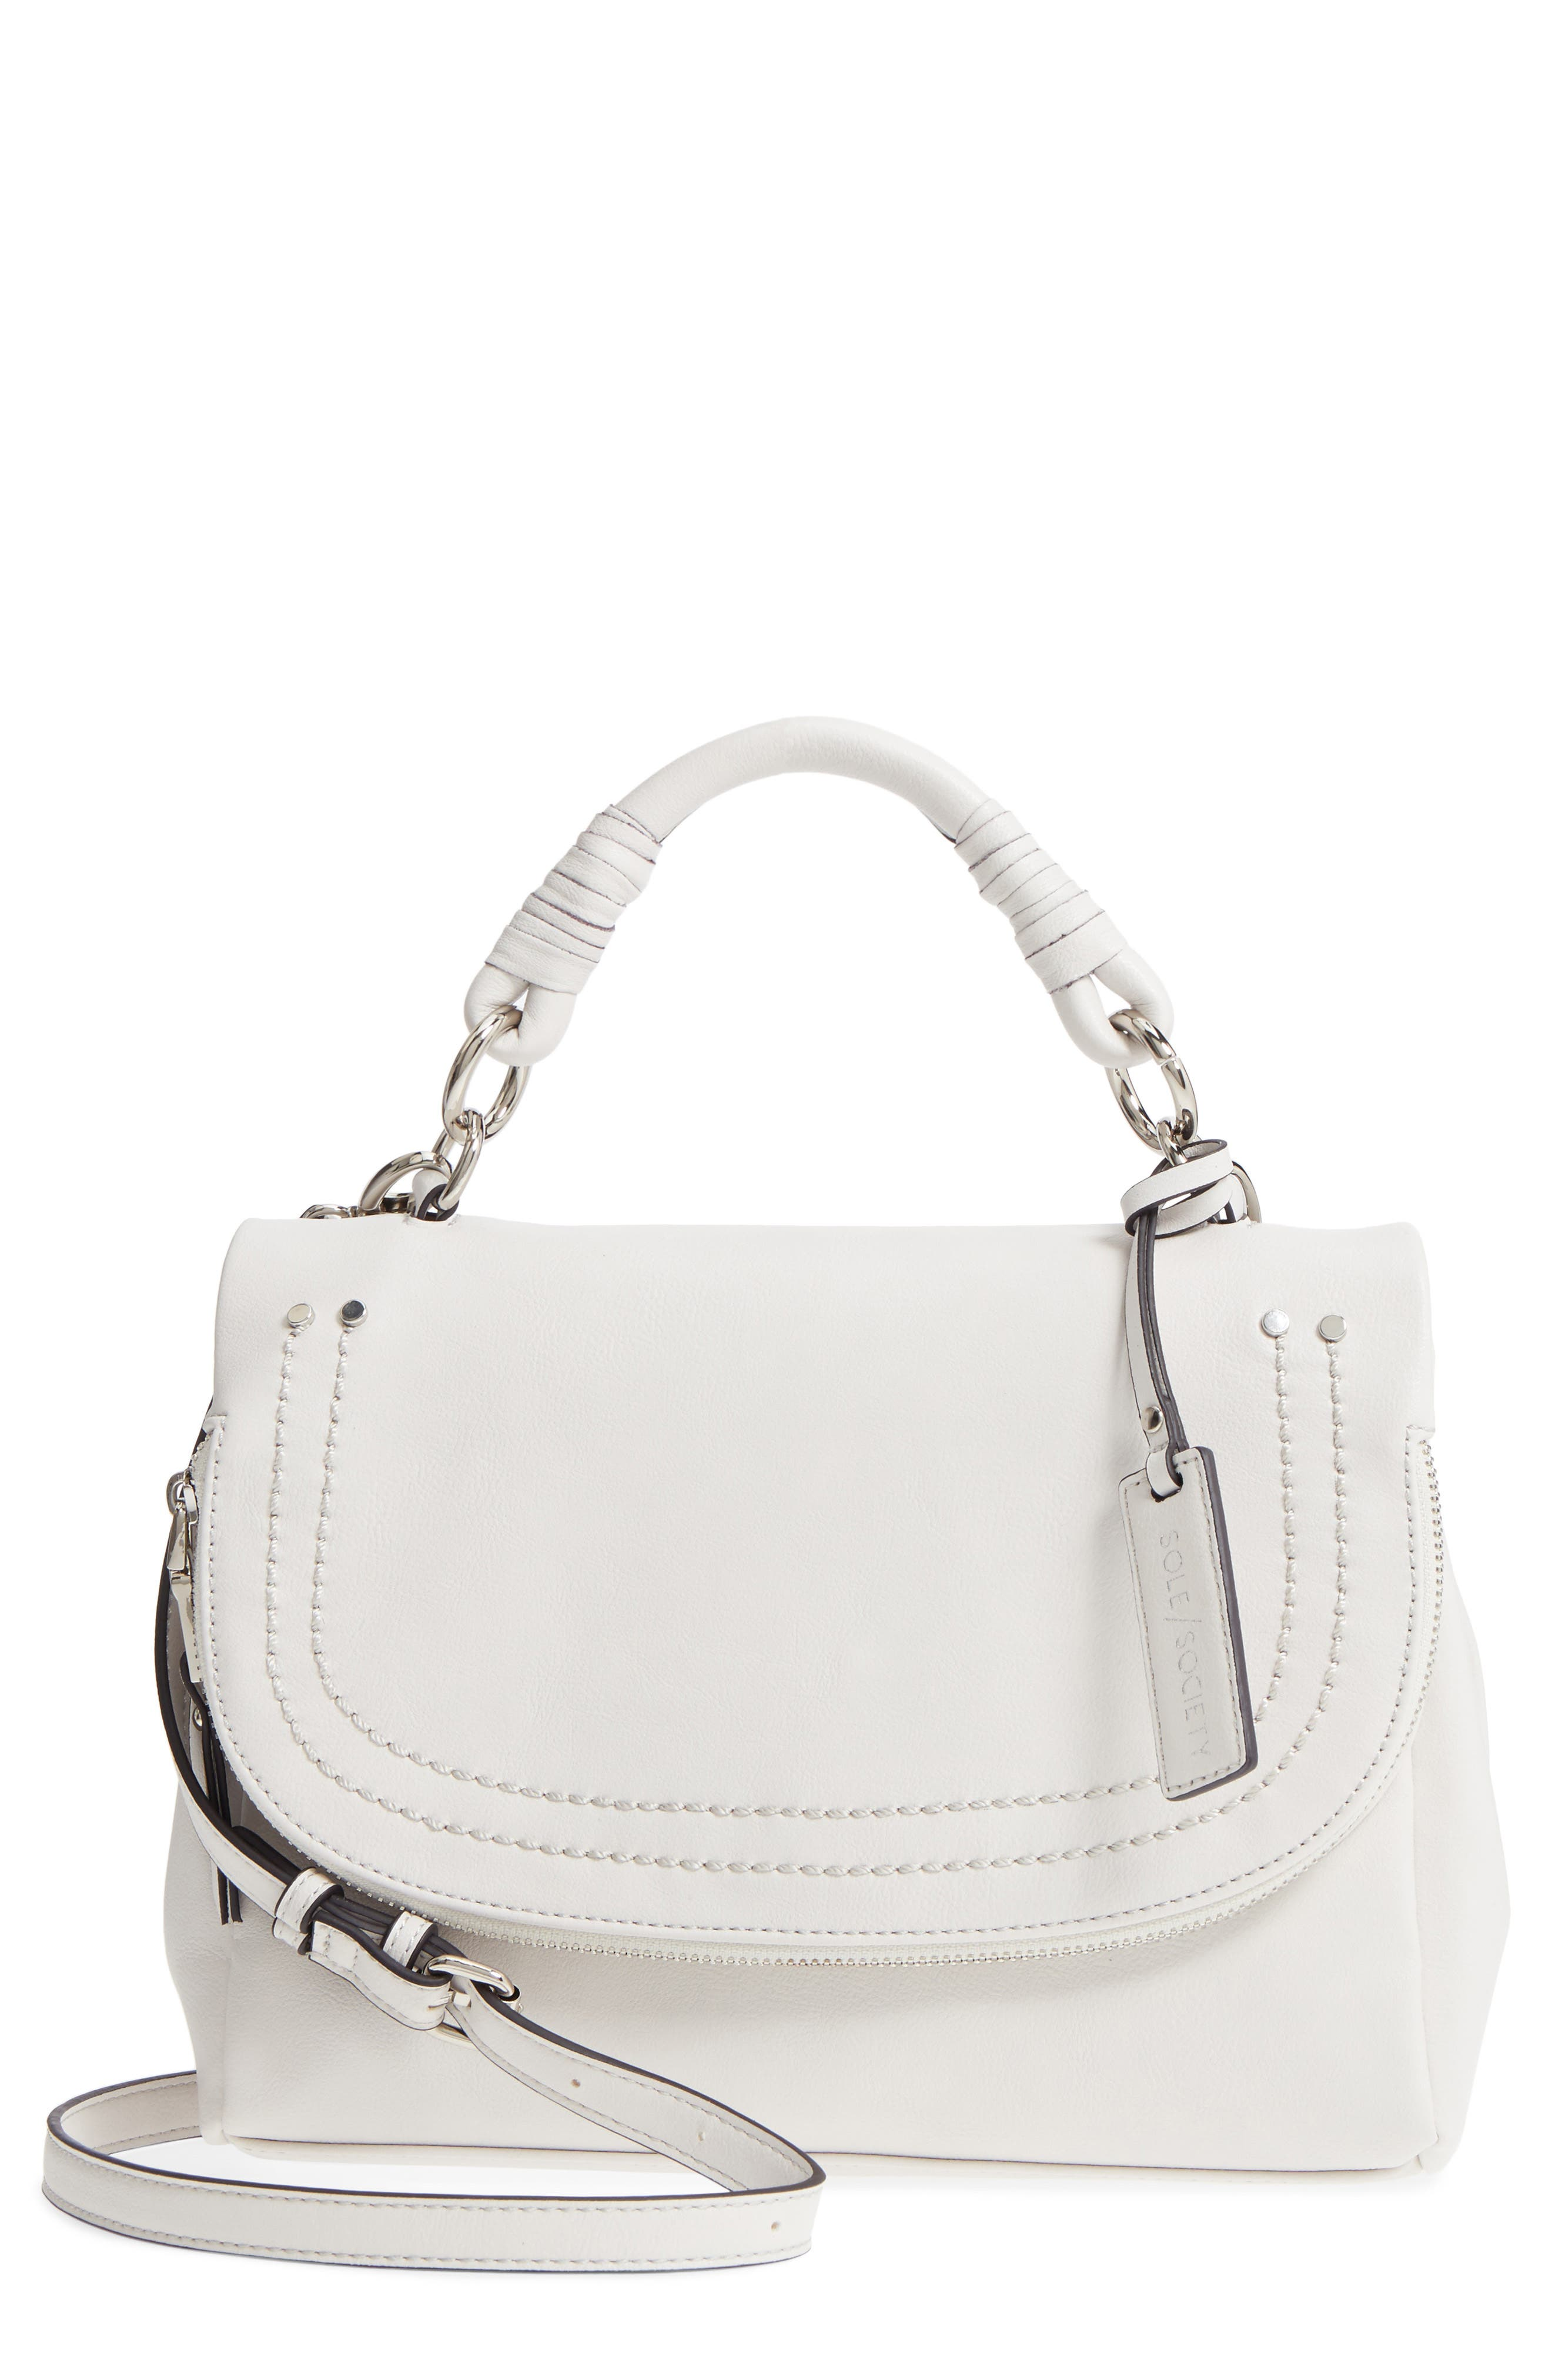 Top Handle Faux Leather Crossbody Bag,                         Main,                         color, 101